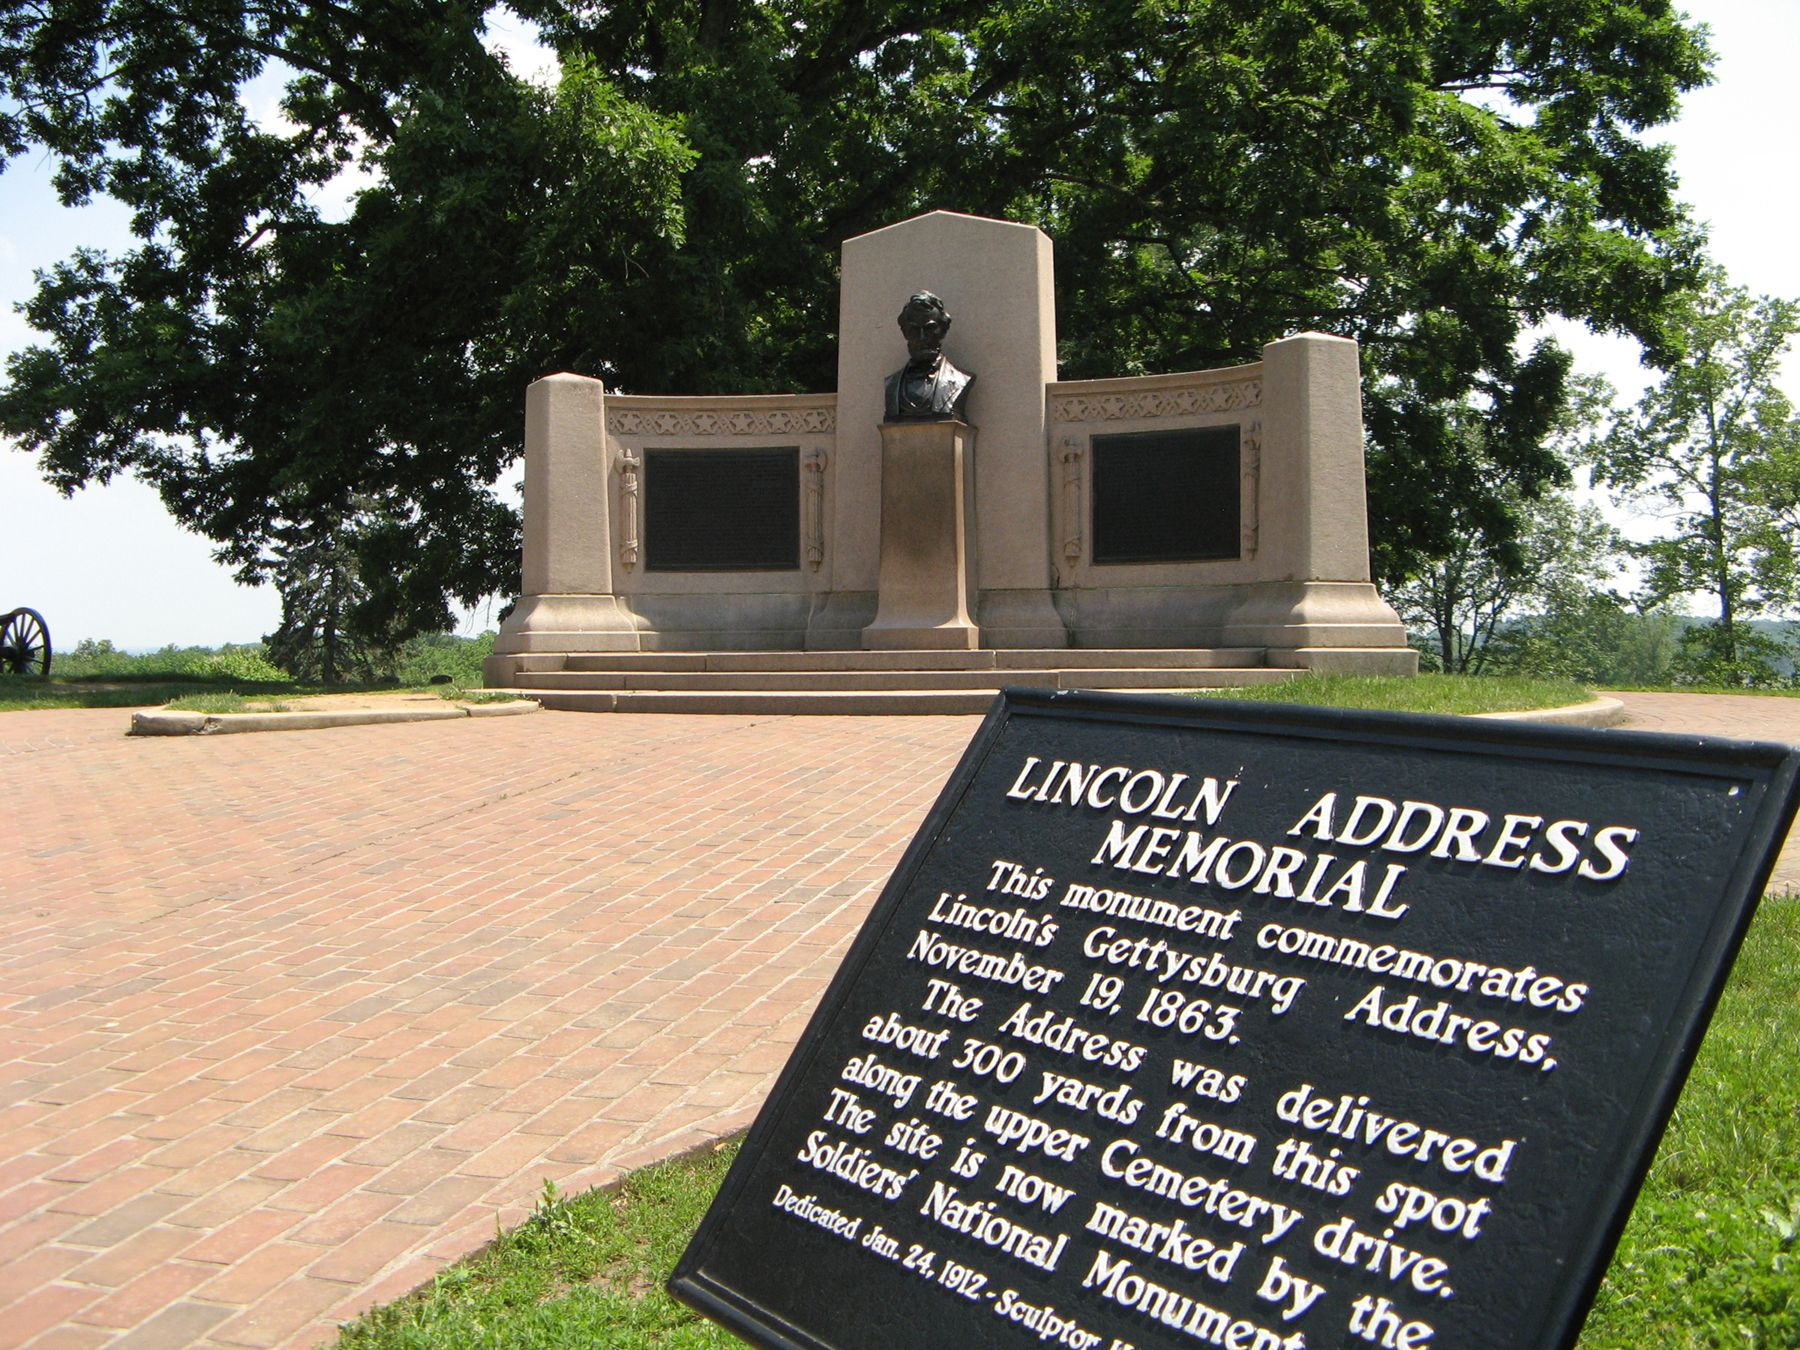 A Marker Stands Next To The Memorial Dedicated To Abraham